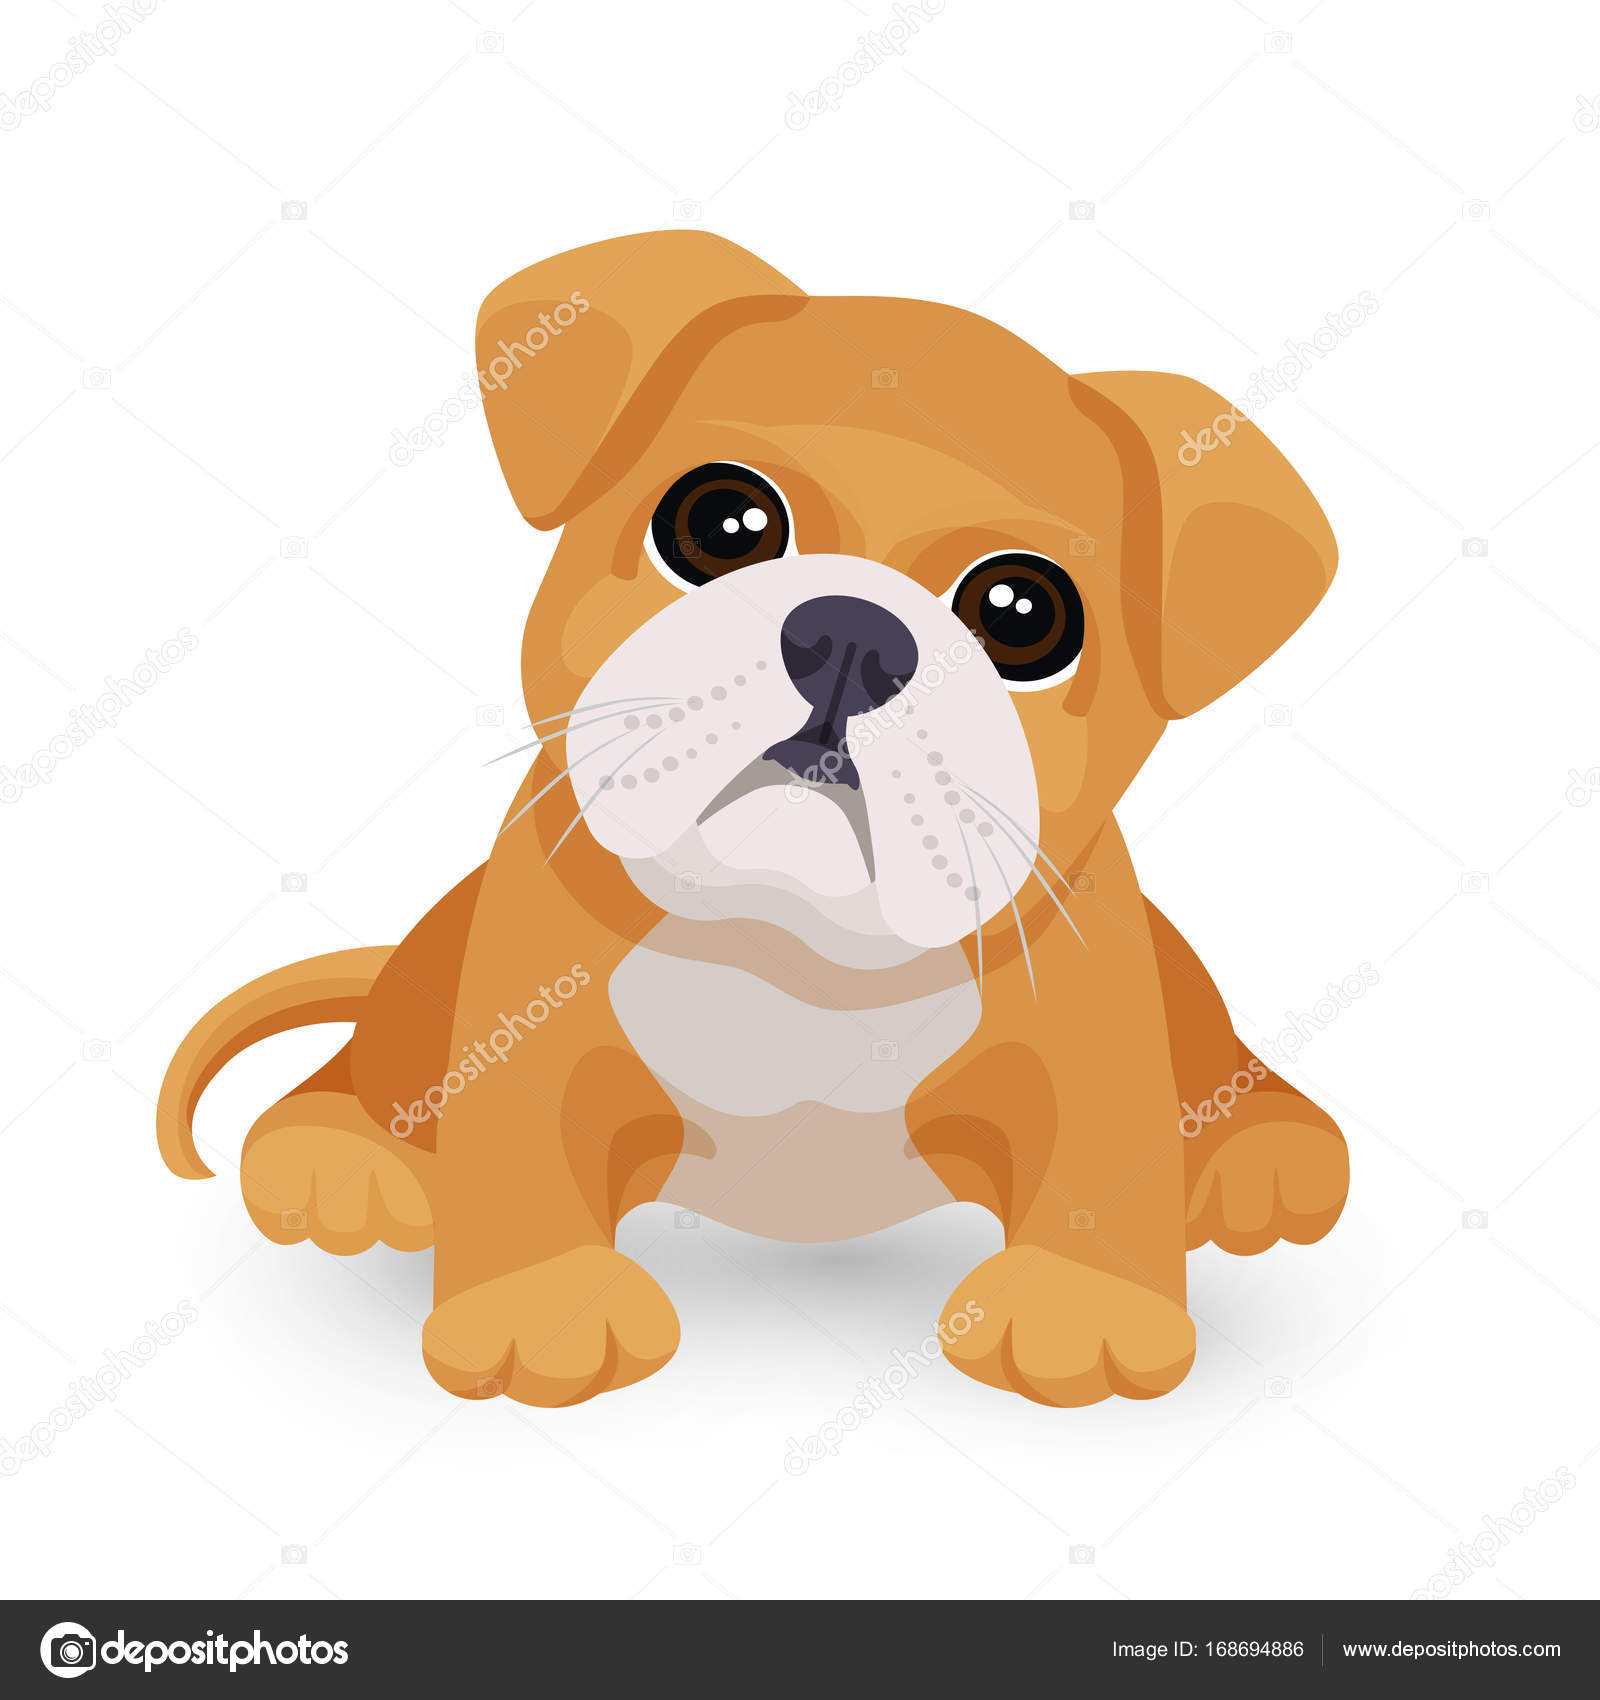 Puppy Desktop Wallpaper Bulldog Puppy Cute Toy In White And Beige Color Vector Stock Vector C Godruma 168694886